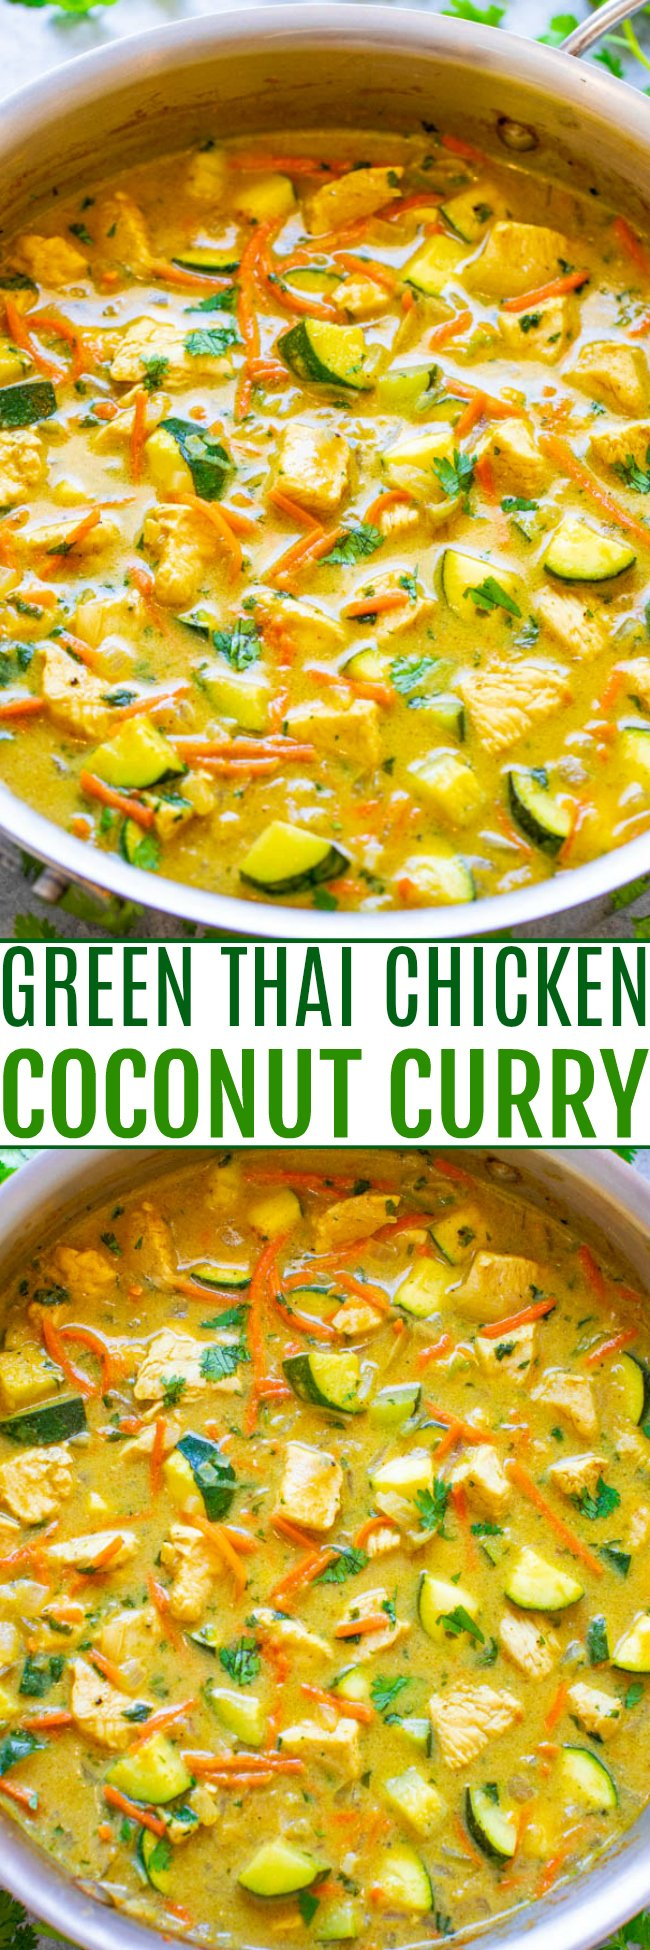 Green Thai Chicken Coconut Curry - An EASY, one-skillet curry that's ready in 20 minutes and tastes BETTER than from a Thai restaurant!! It's healthy comfort food that tastes AMAZING!!